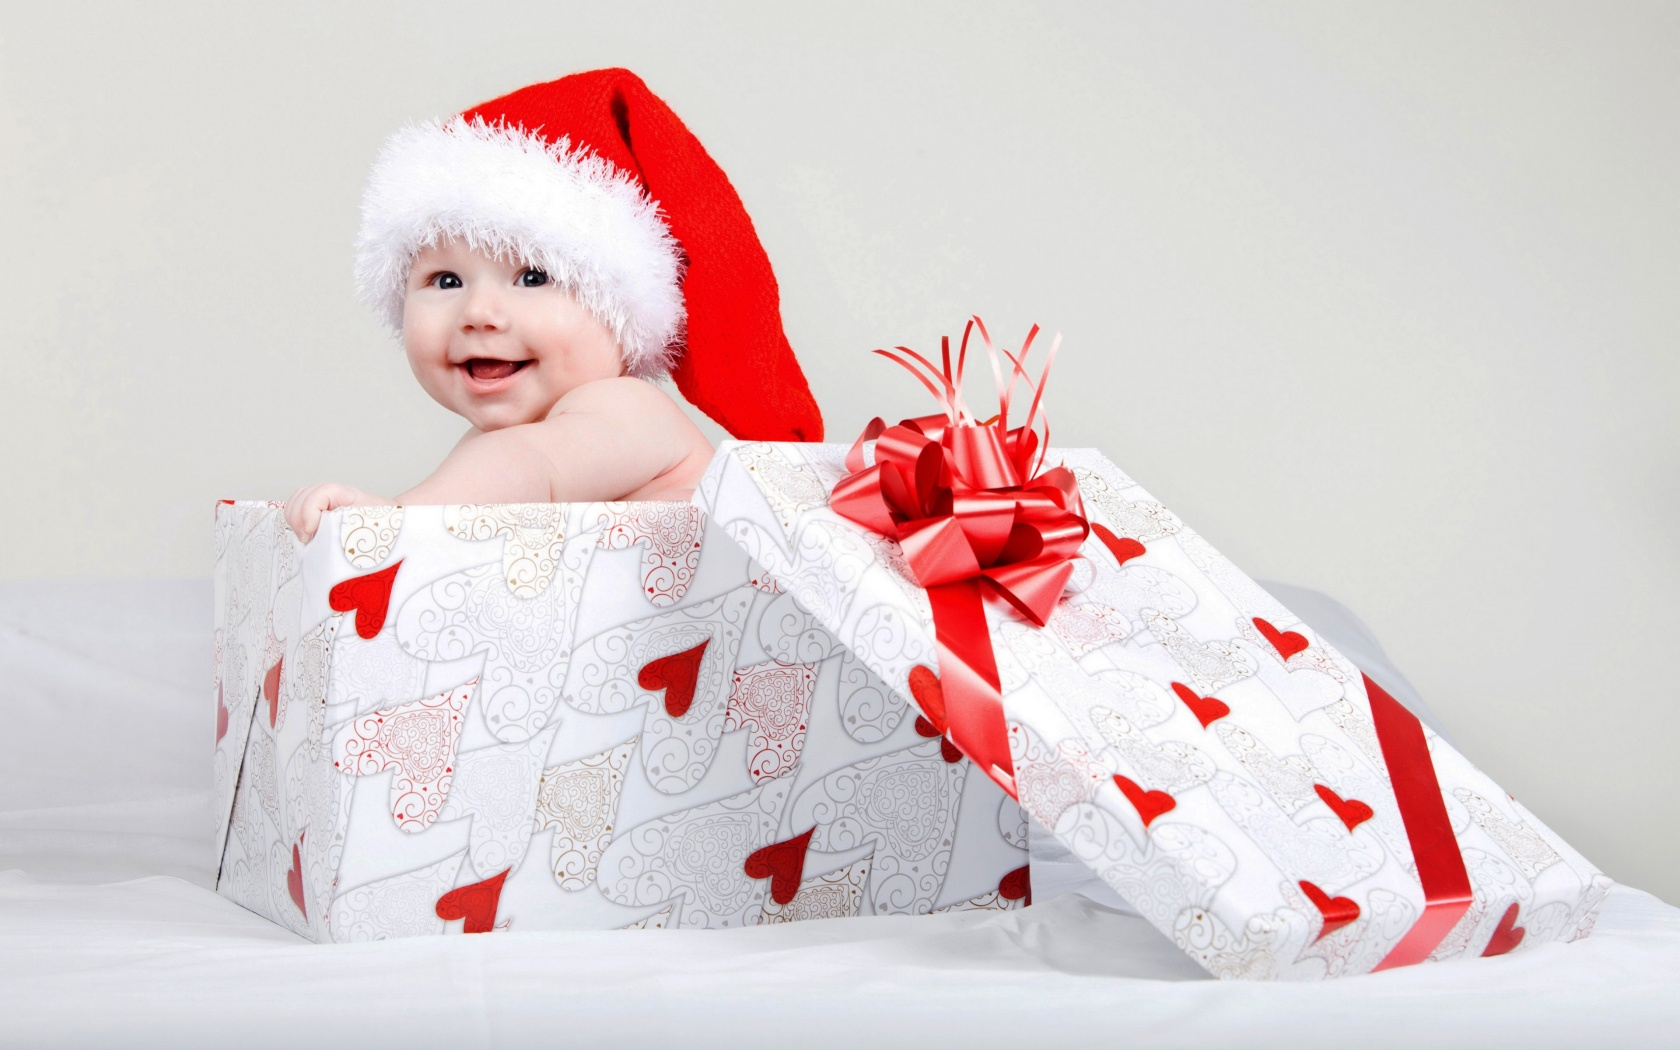 Baby Gifts For Christmas : Christmas baby gift box wallpapers